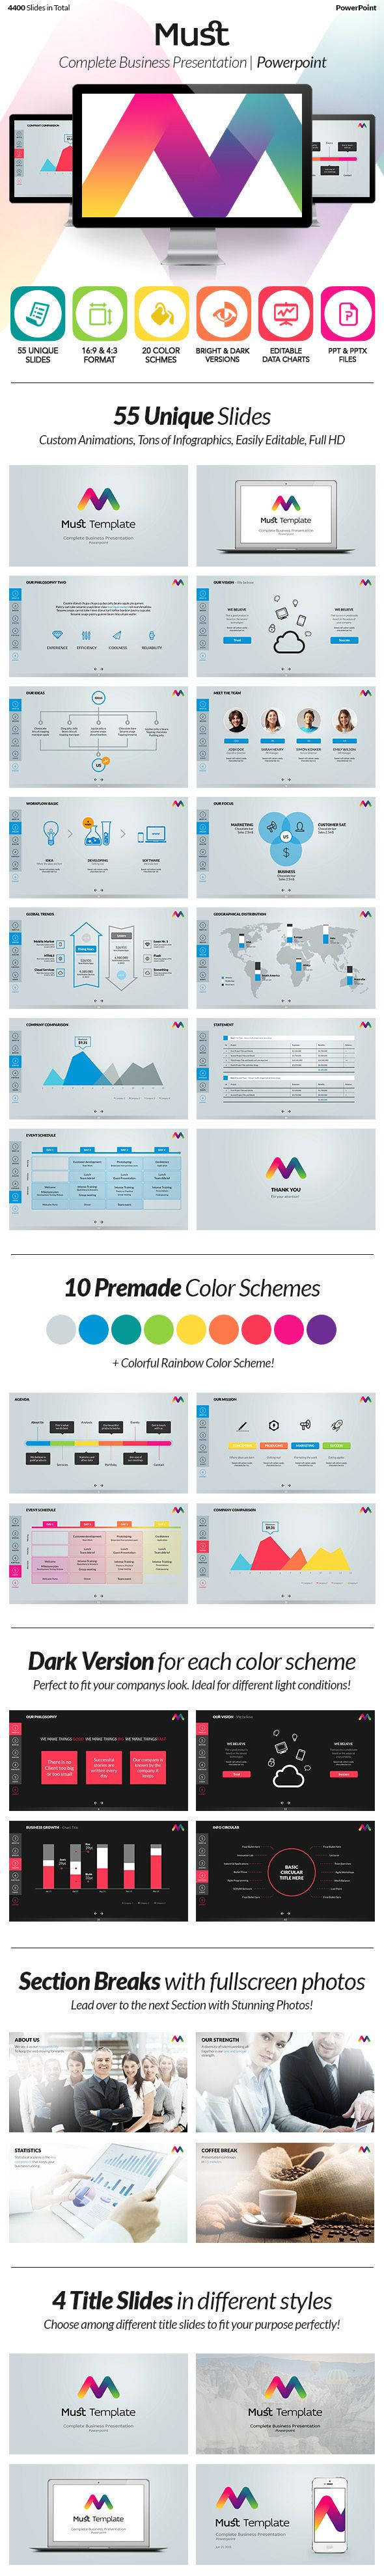 Must PowerPoint & Keynote Presentation Template by Ergün, via Behance